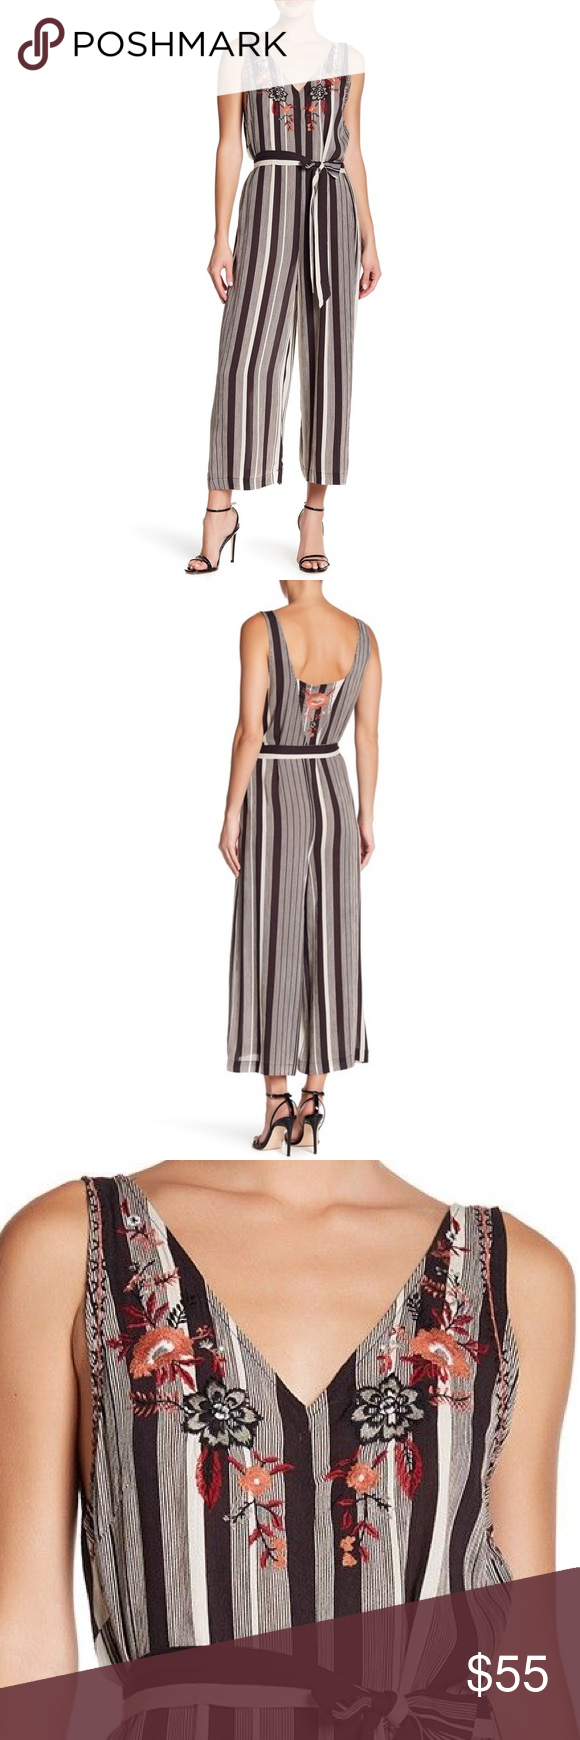 NEW Fall Jumpsuit Striped Floral Embroidered  M Modern Striped Jumpsuit with Fall Embroidery  Brand. Crimson and Grace  Size. Medium  Condition. New with Tags  - V-neck - Sleeveless - Concealed side zip closure - Striped print - Floral embroidery - Self-tie waist Pants Jumpsuits & Rompers #jumpsuitromper